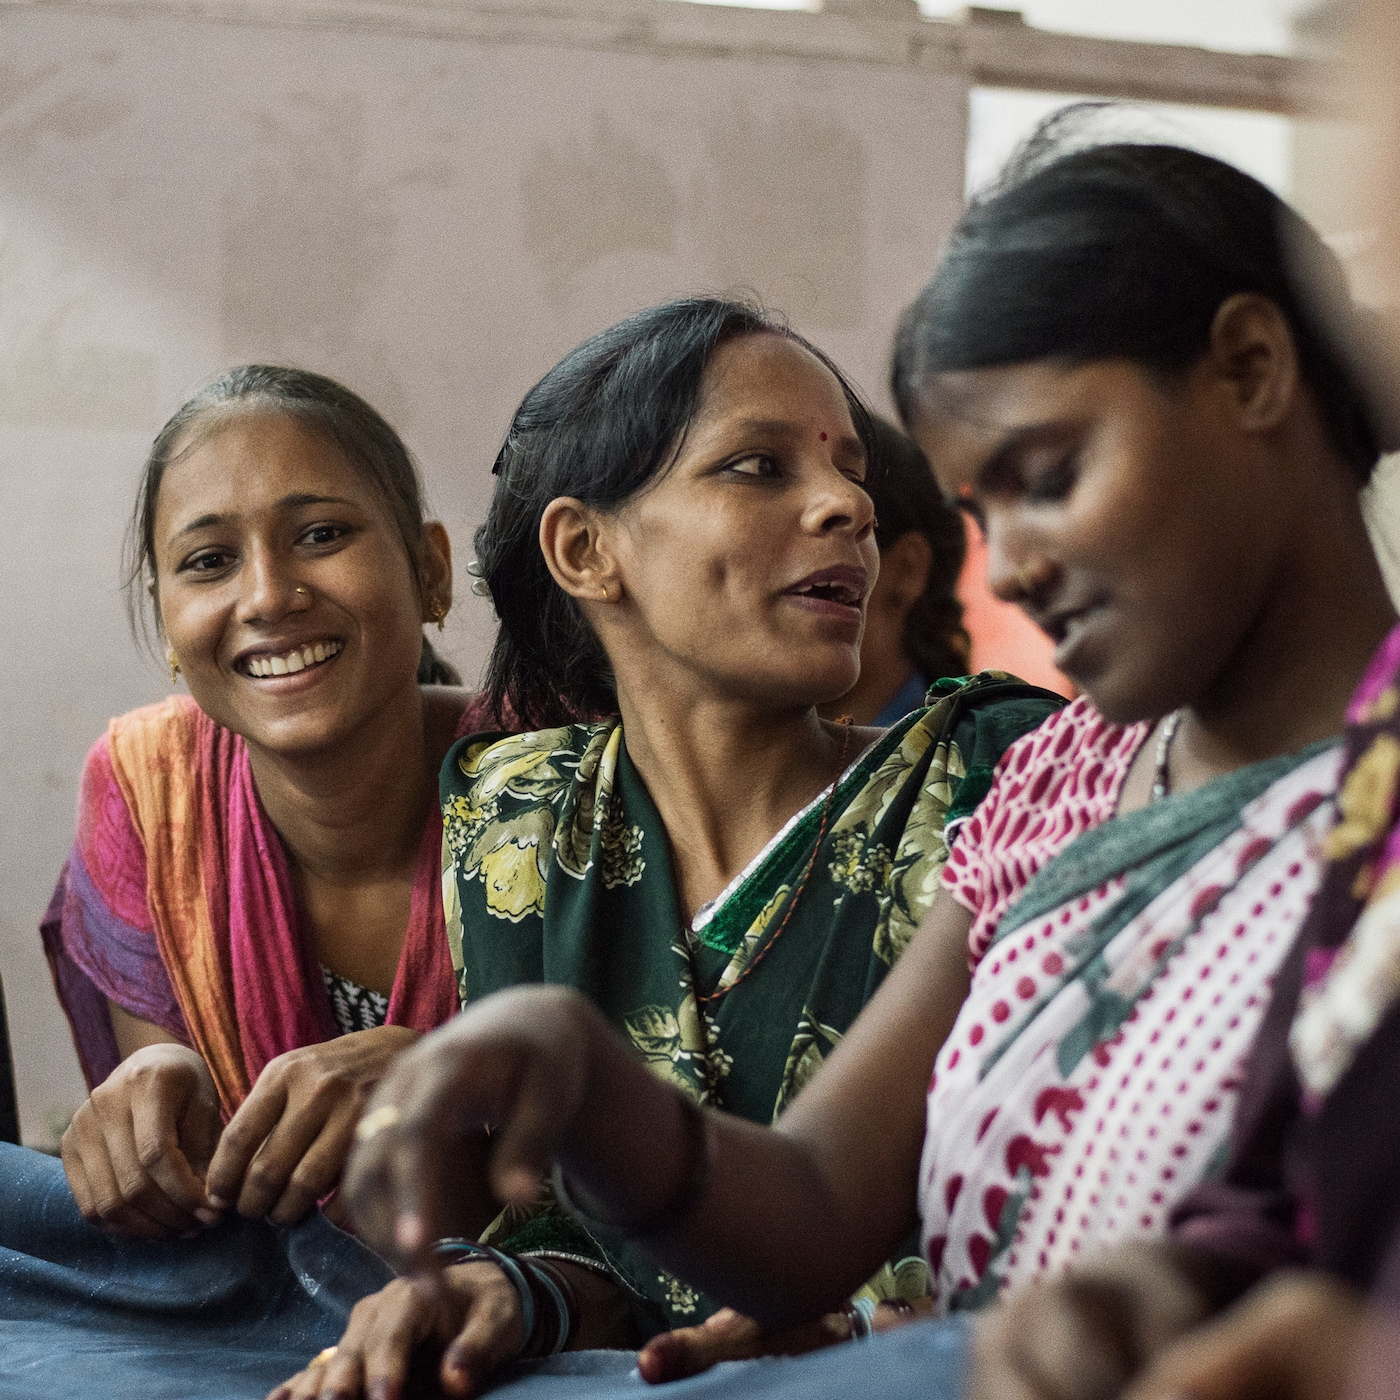 IKEA is about to launch INNEHÅLLSRIK, the 7th limited edition collection co-created with skilled artisans in India. It is part of the IKEA Social Entrepreneurs initiative, which creates jobs for talented women where they're needed most.